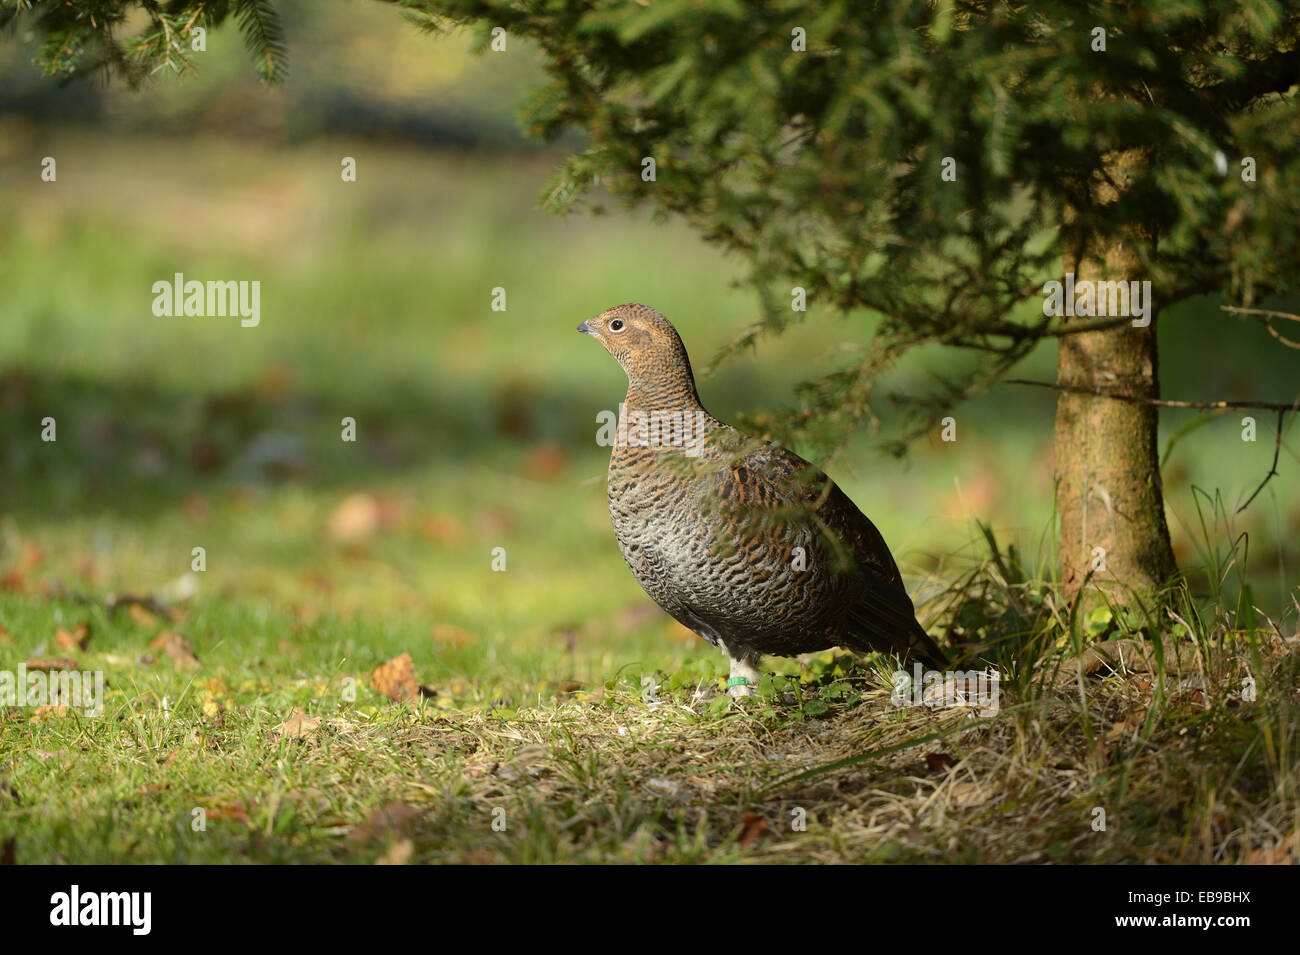 Close-up of a Black Grouse or Blackgame (Tetrao tetrix) in autumn in the bavarian forest. - Stock Image